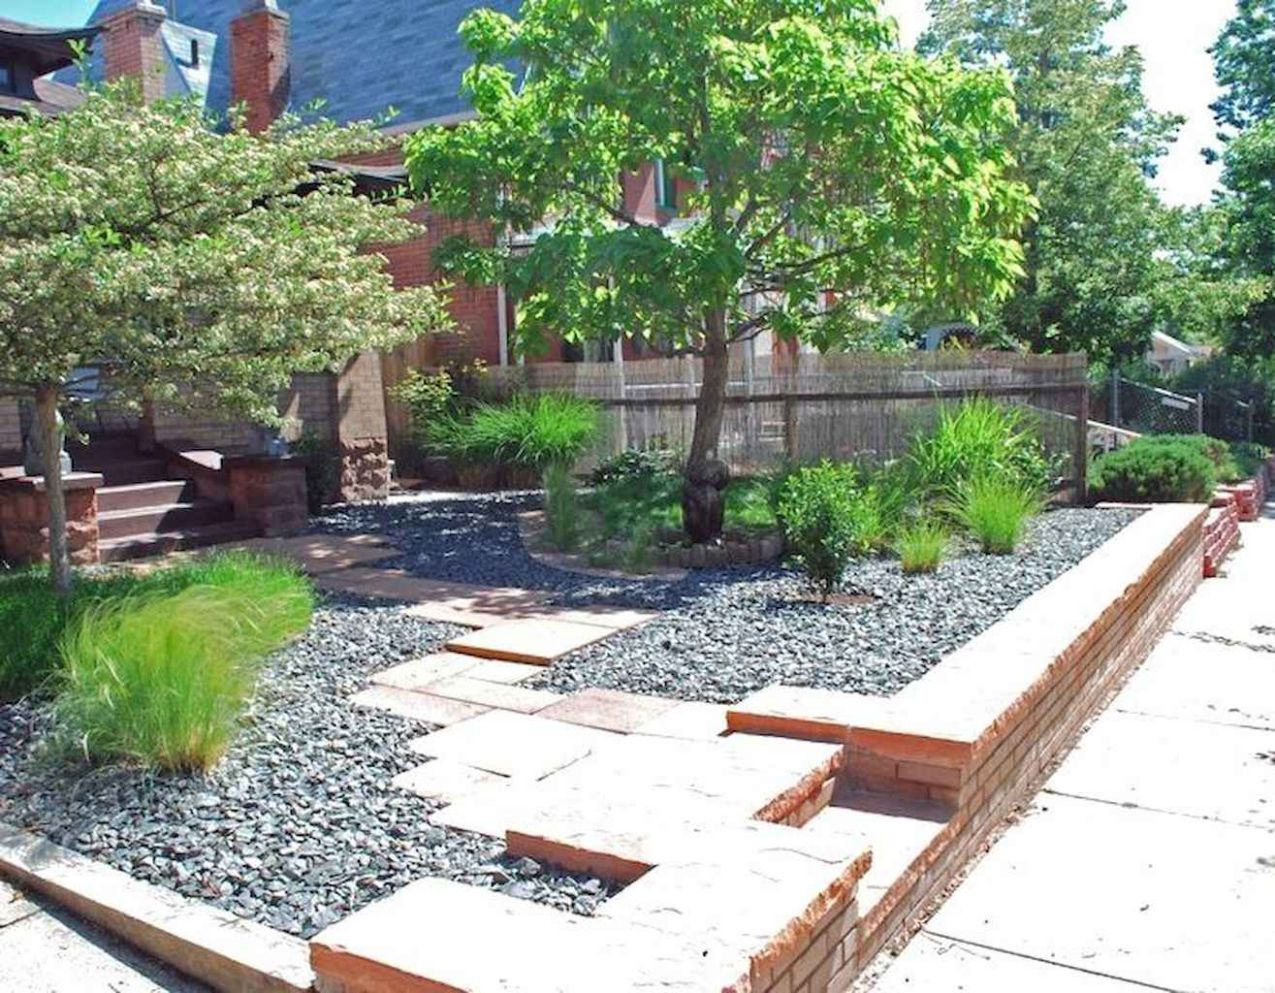 12 Low Maintenance Small Front Yard Landscaping Ideas - HomeSpecially - backyard ideas low maintenance